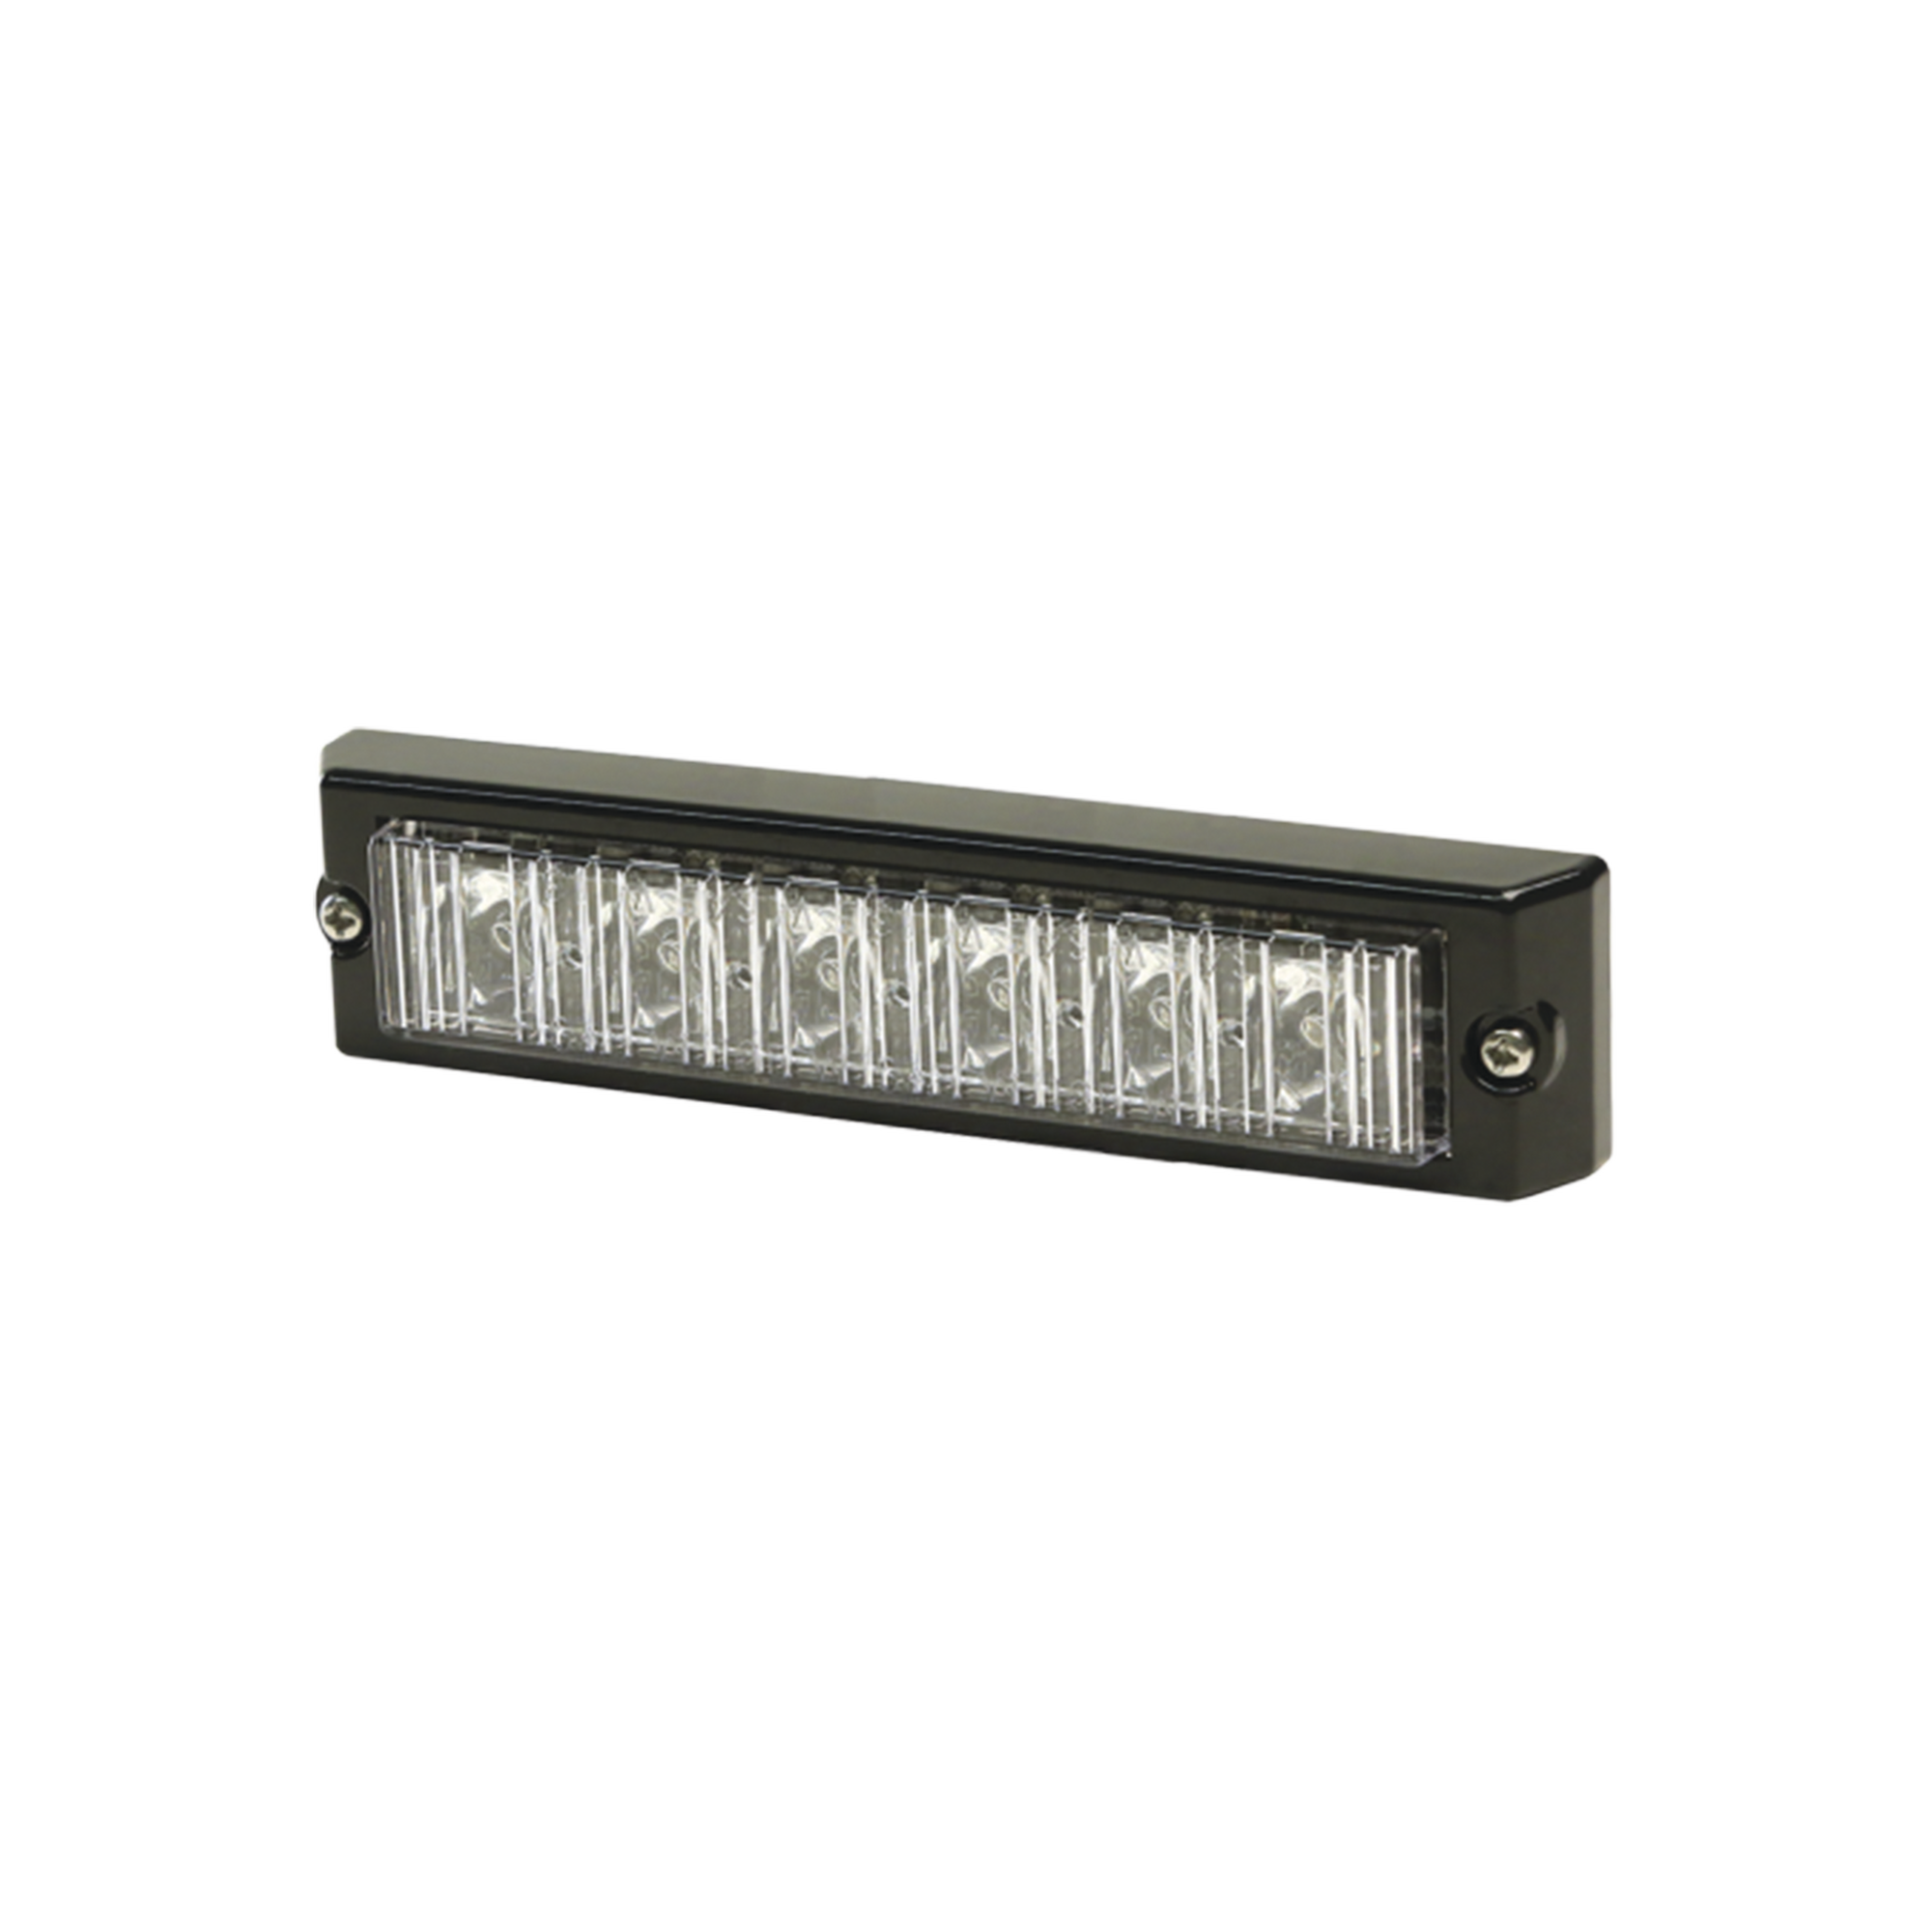 Luz Auxiliar Serie X3705, 6 LEDs Ultra Brillantes, color ámbar